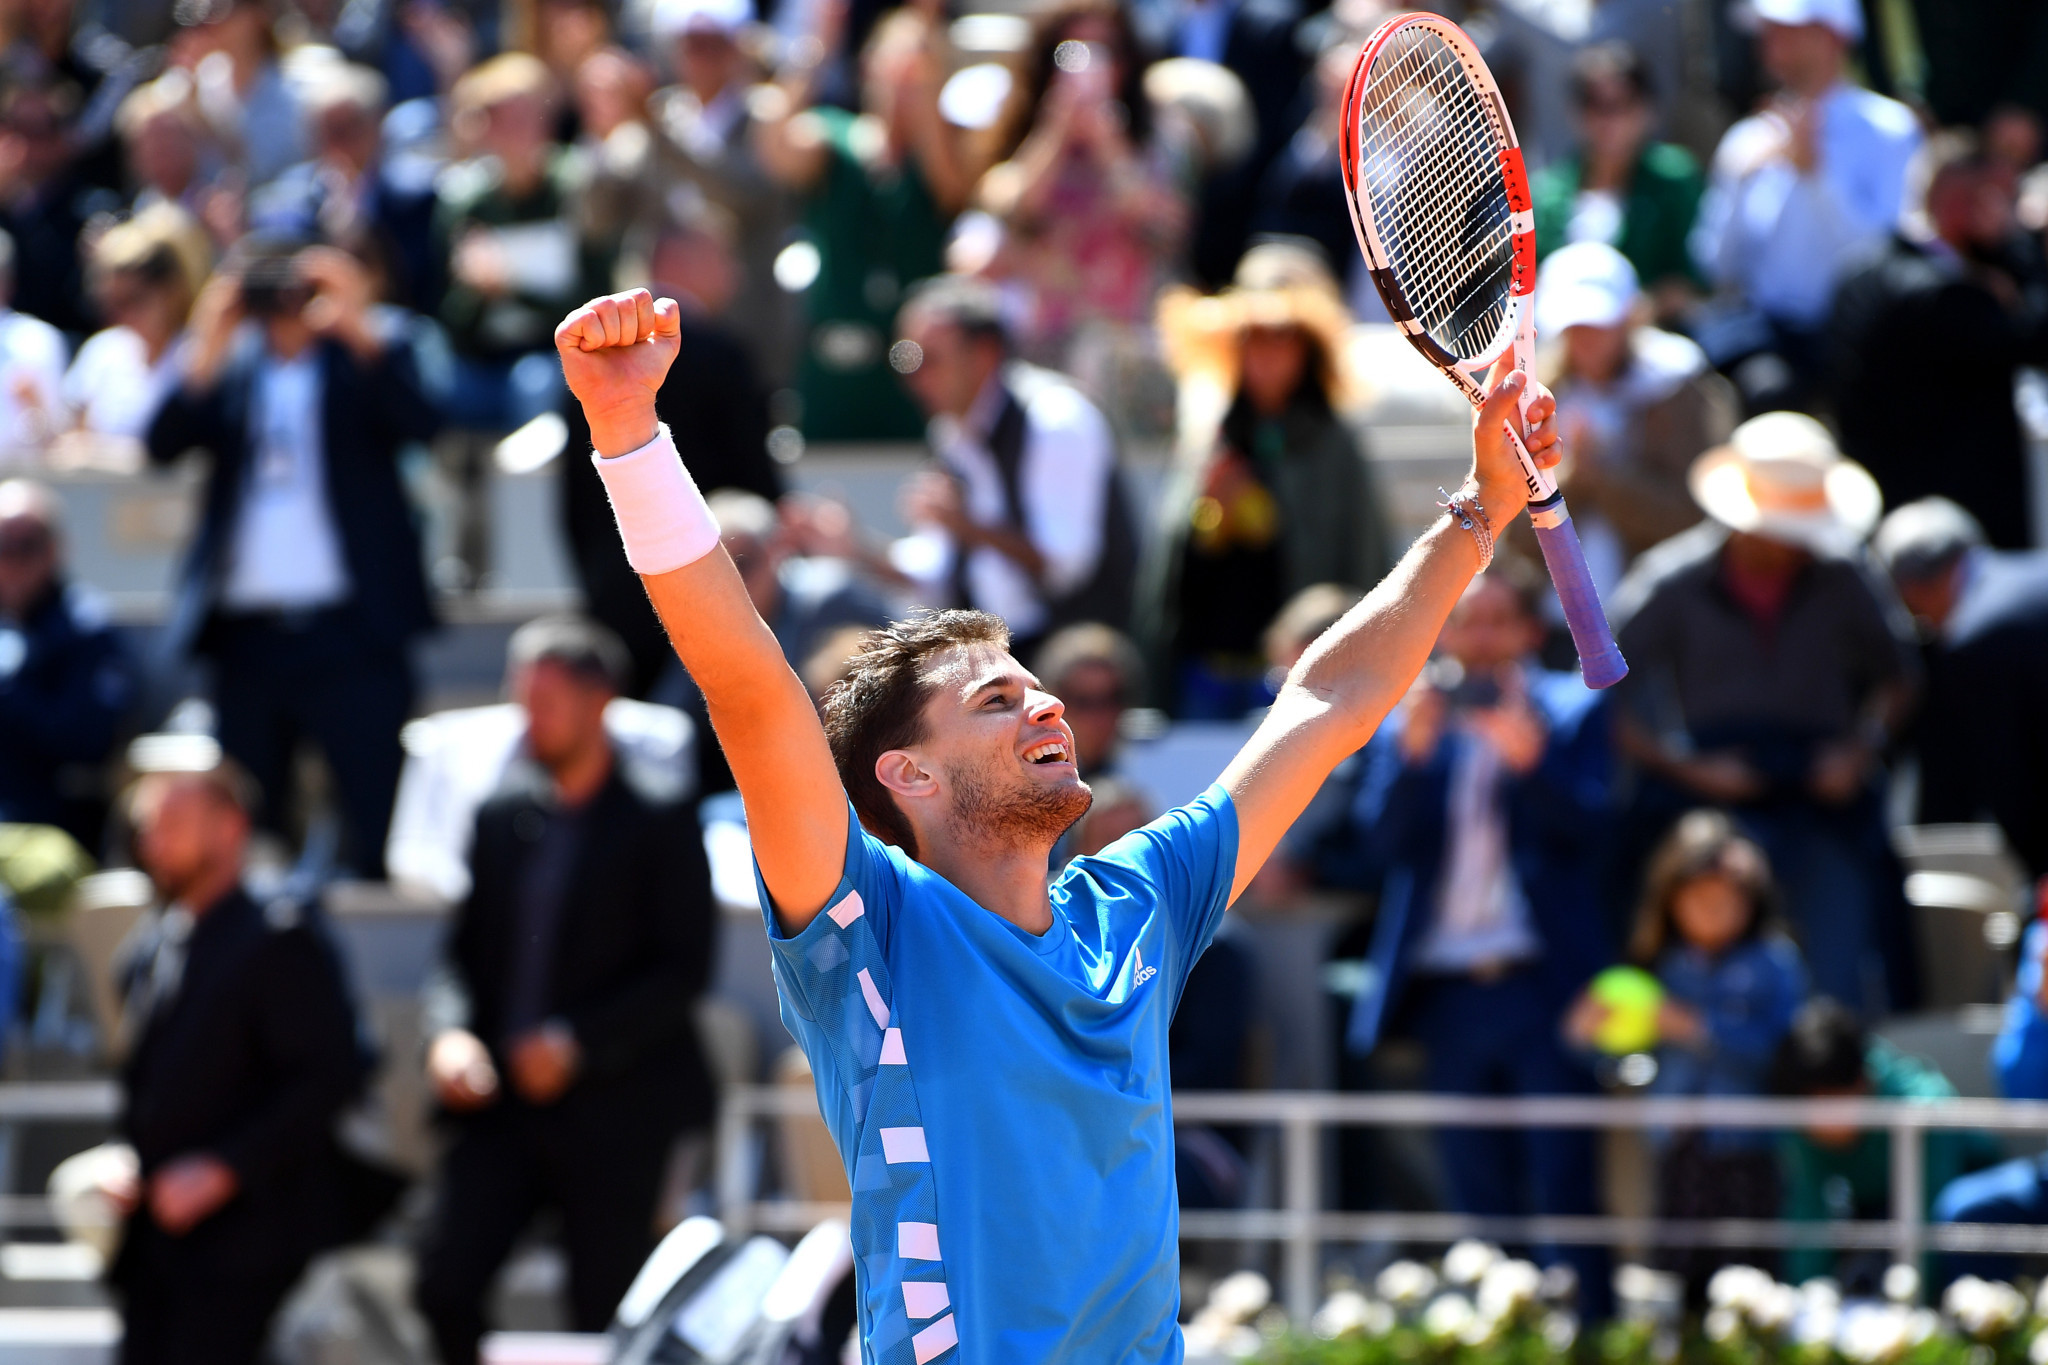 There was elation for Thiem as he sealed a place in tomorrow's French Open final against Spaniard Rafael Nadal ©Getty Images